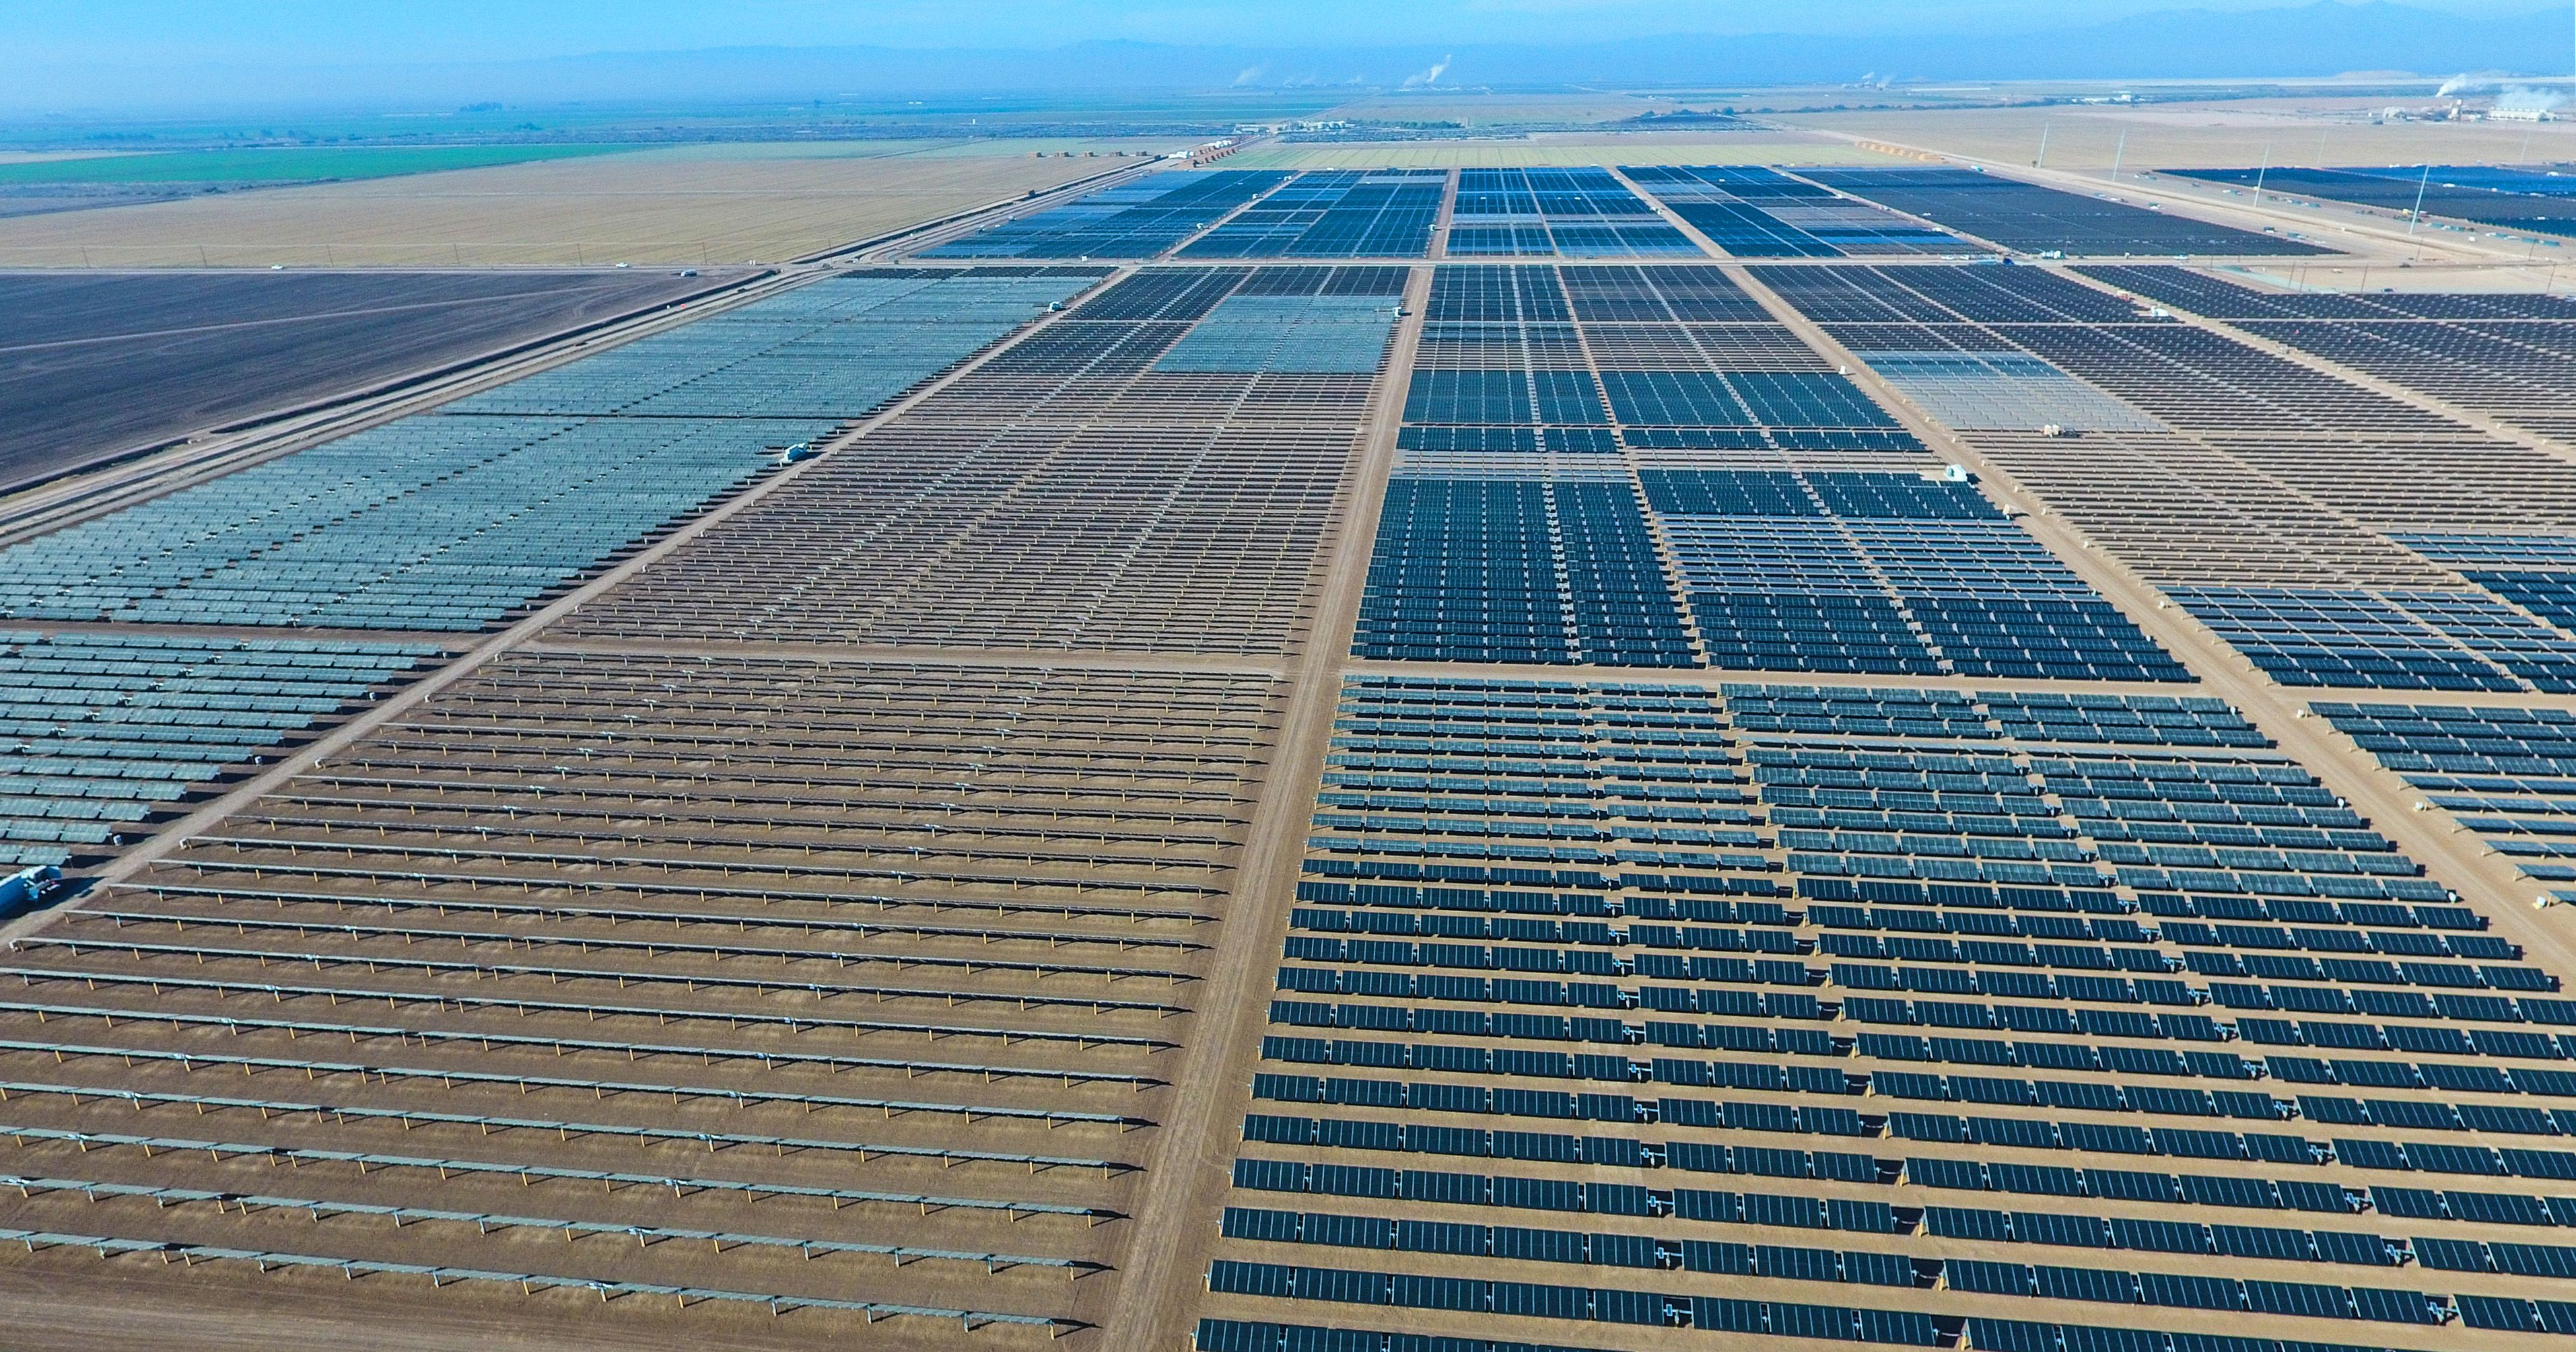 Solar Frontier Americas Development Sells 66 MW Solar Project To X-ELIO